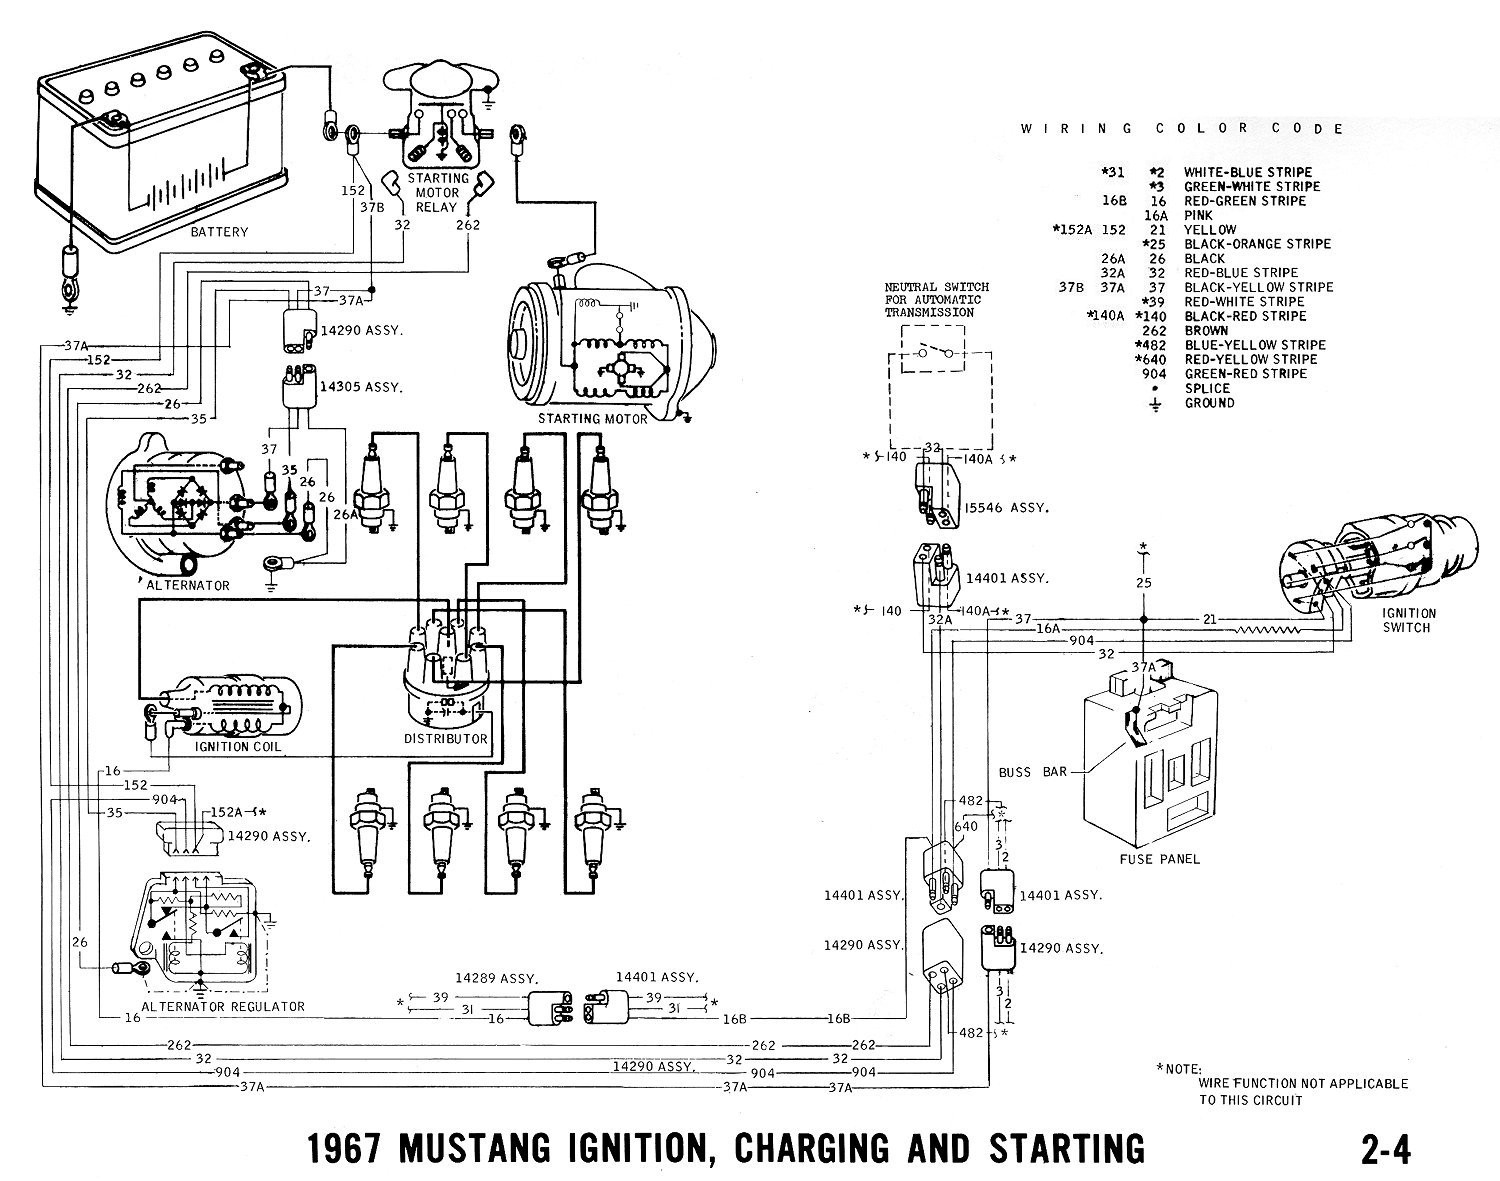 1967 Mustang Ignition, Starting And Charging Diagram